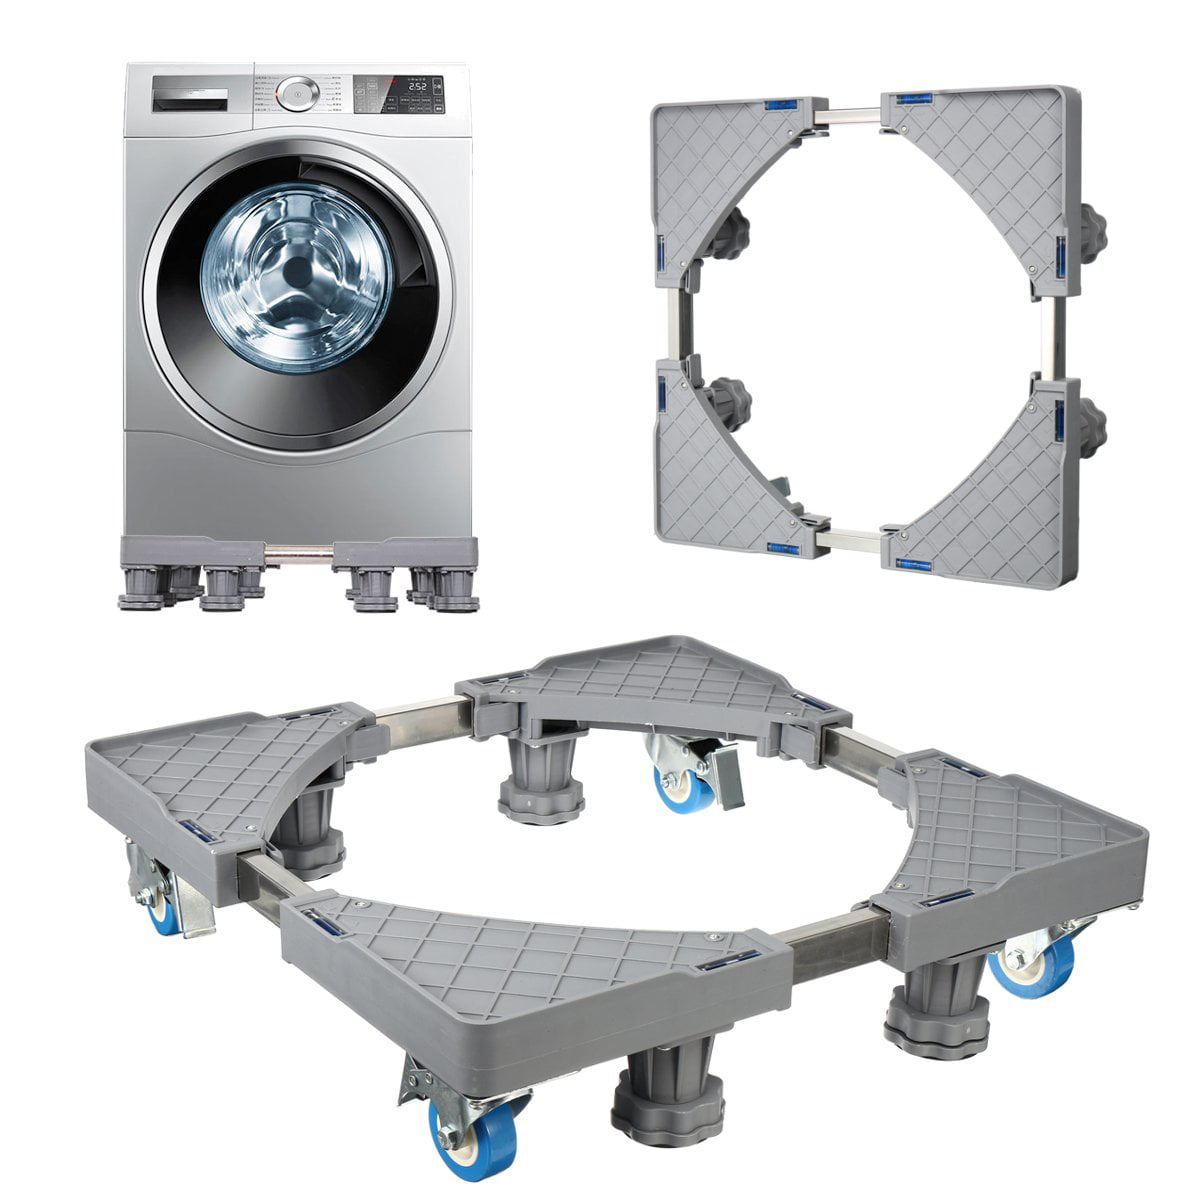 Washing Machine Stand Multi-functional Movable Adjustable Base Mobile for Washing Machine Refrigerator and Dryer